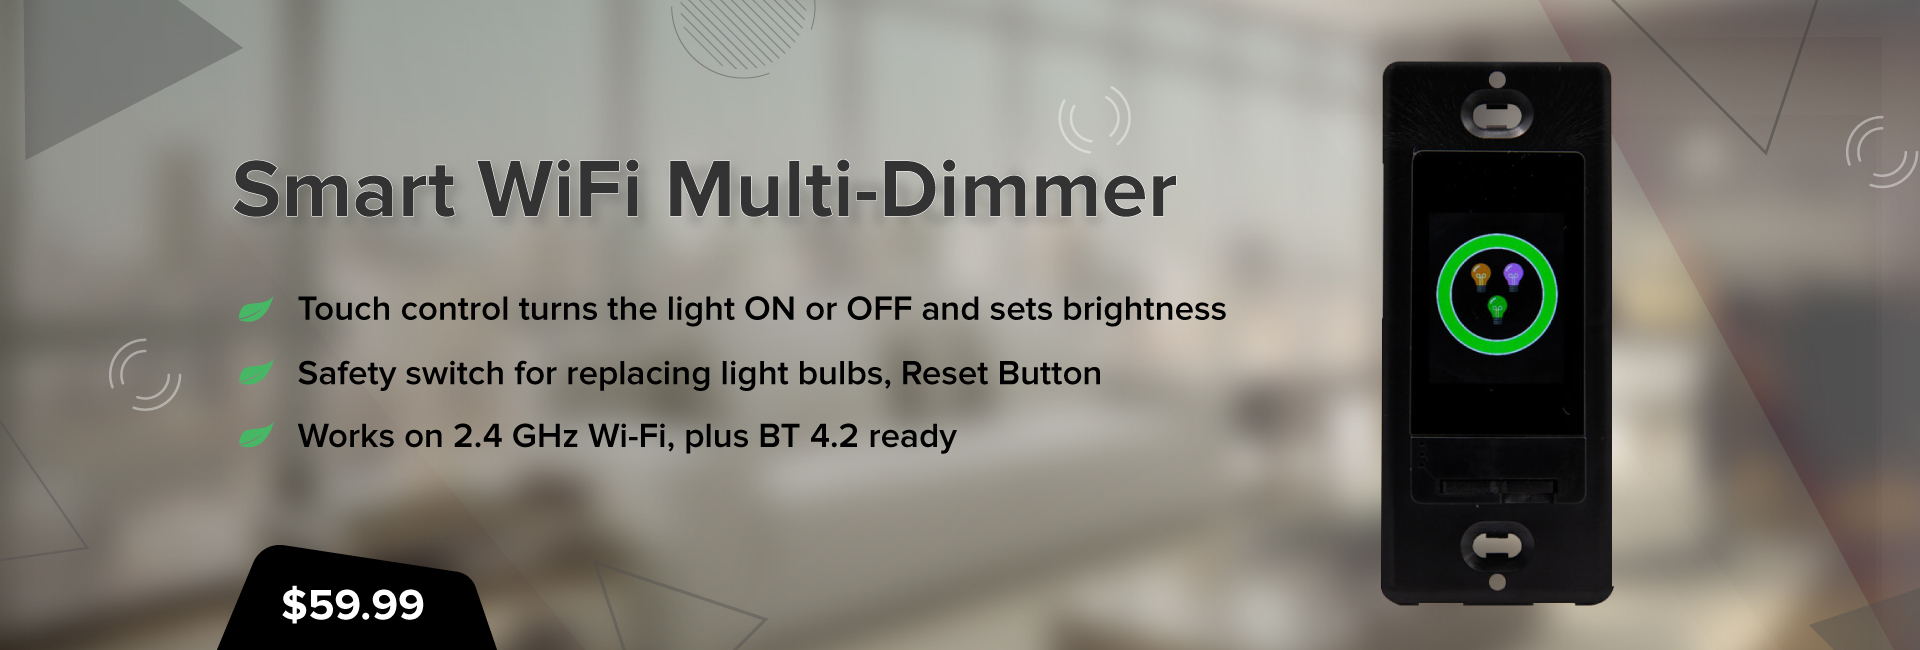 Smart WiFi Multi-Dimmer Black